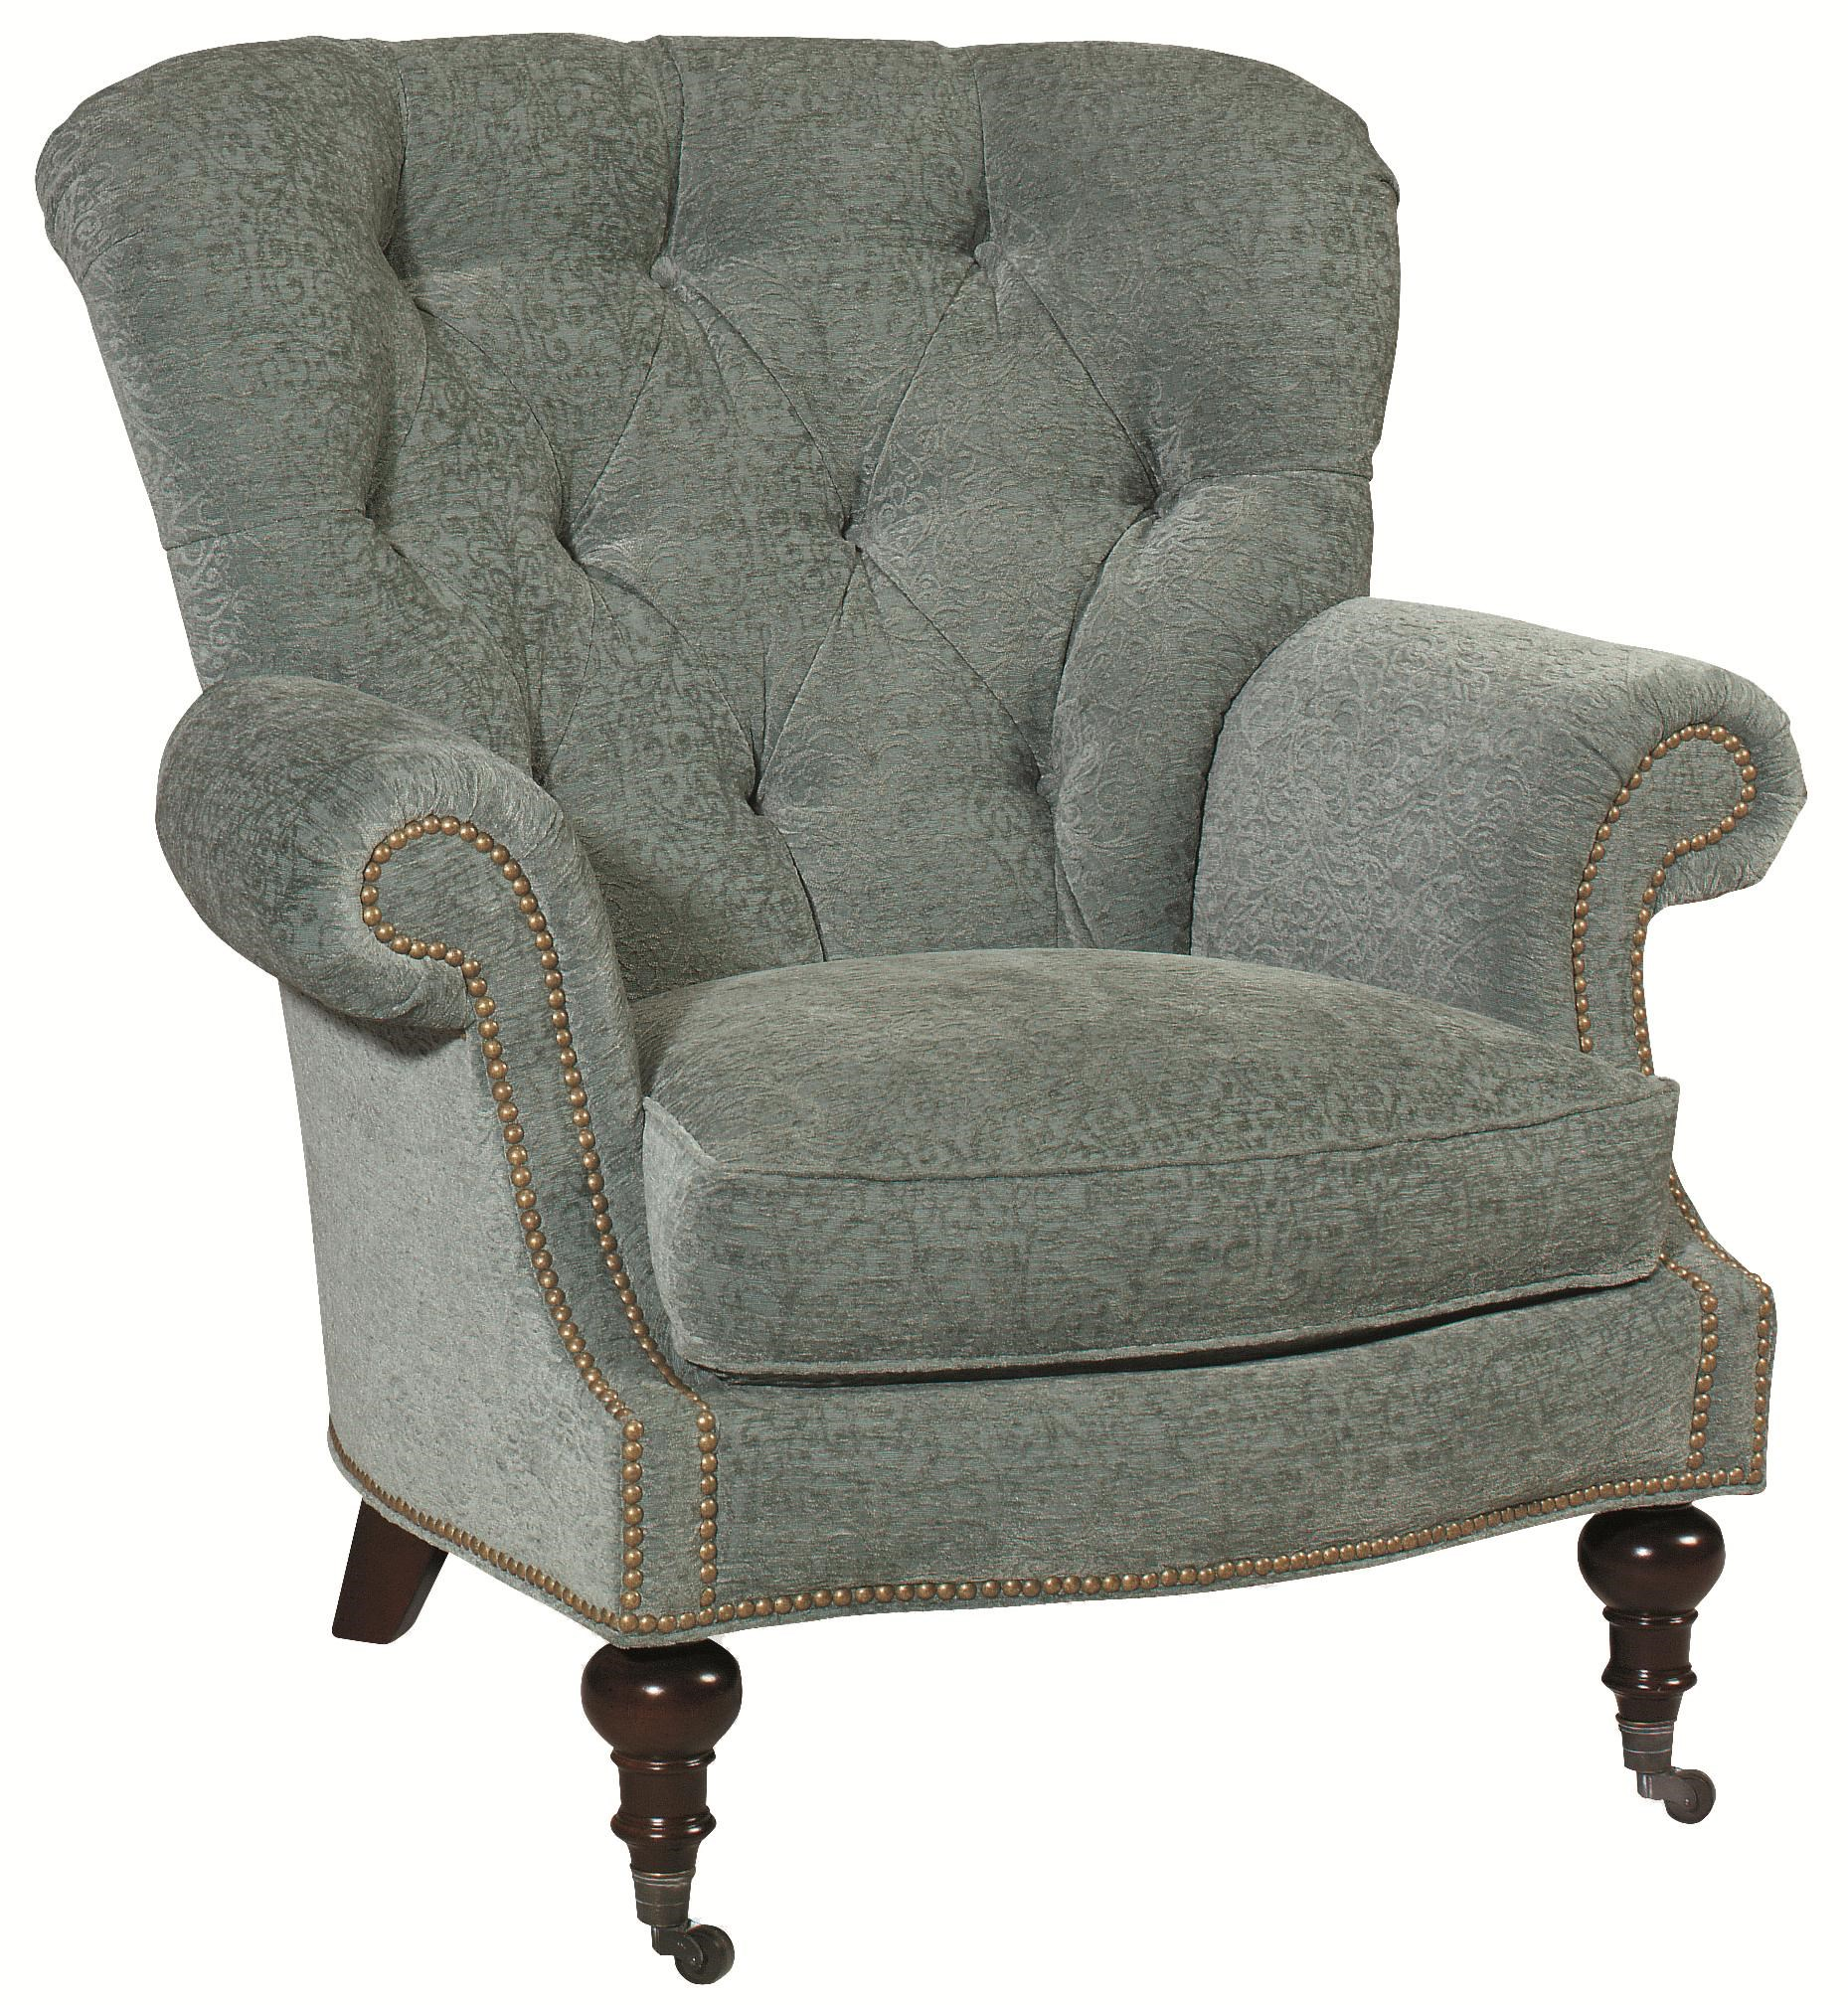 Delicieux Thomasville® Upholstered Chairs And OttomansVienna Tufted Back Chair ...